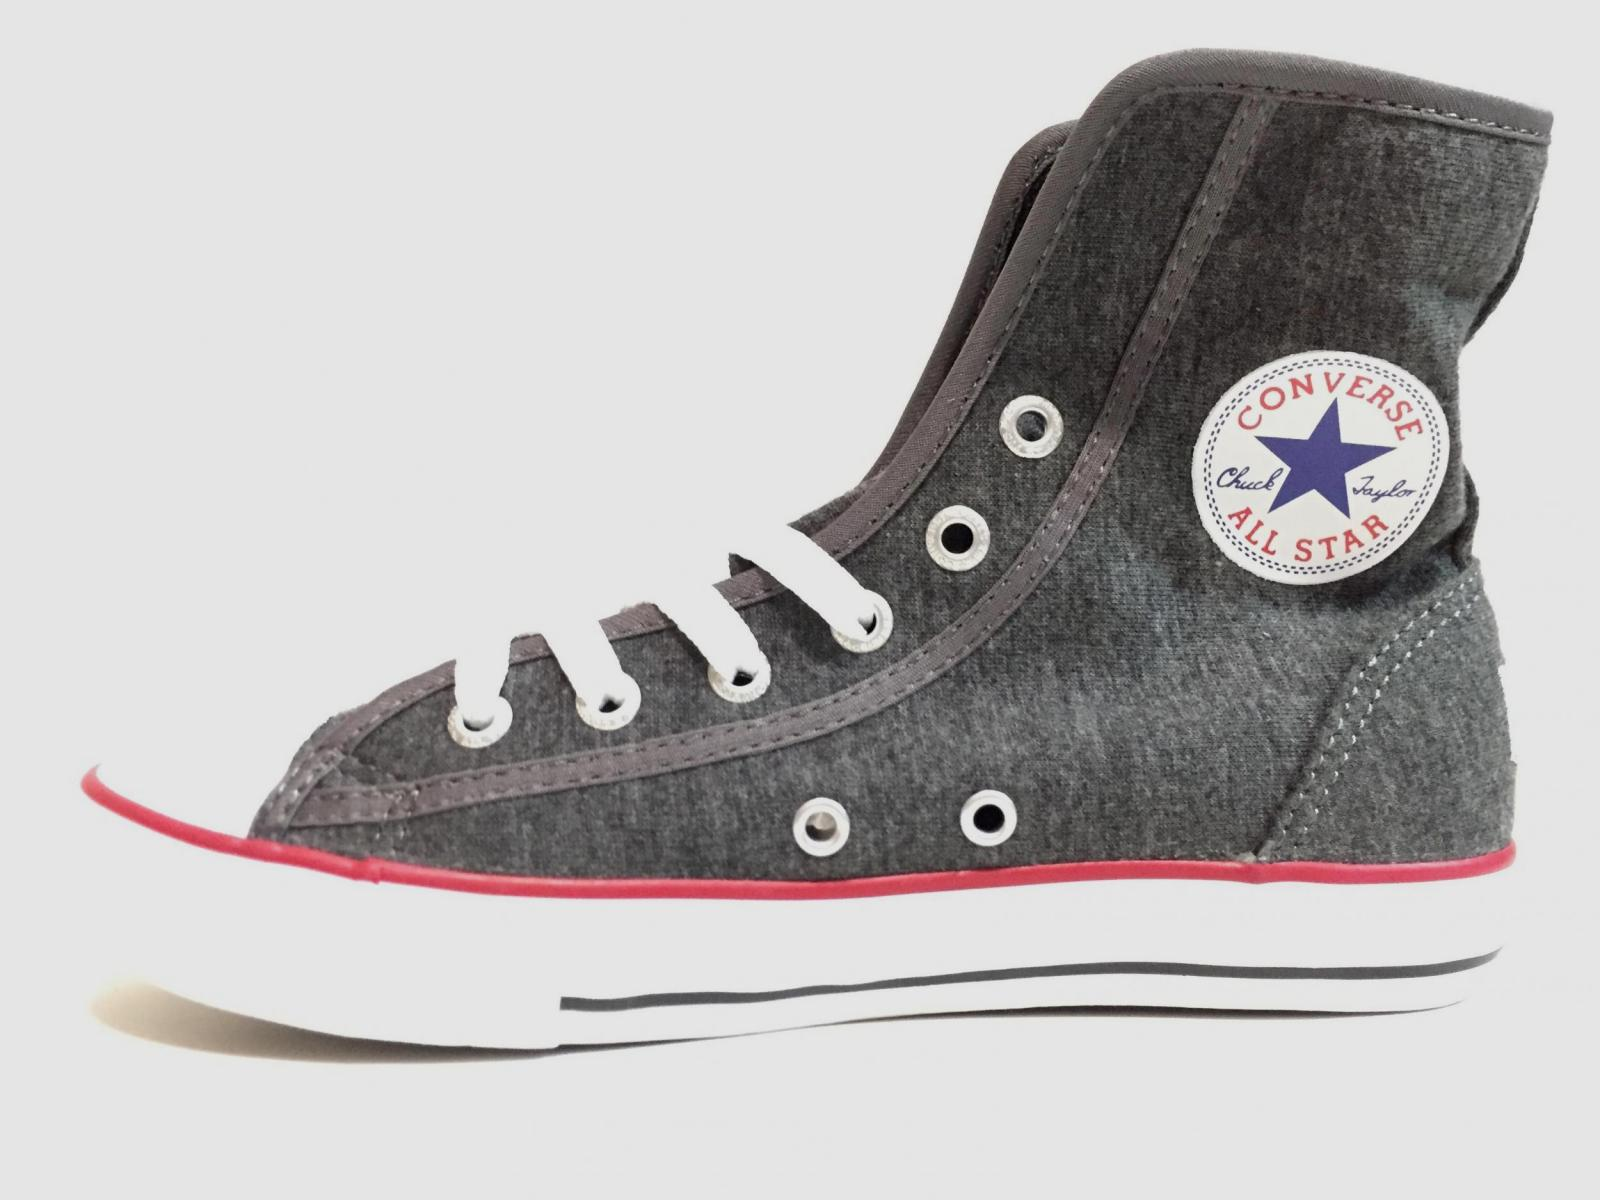 SCARPE SNEAKERS DONNA CONVERSE ALL STAR CT SUPER HI 635130C TELA ORIGINAL PE